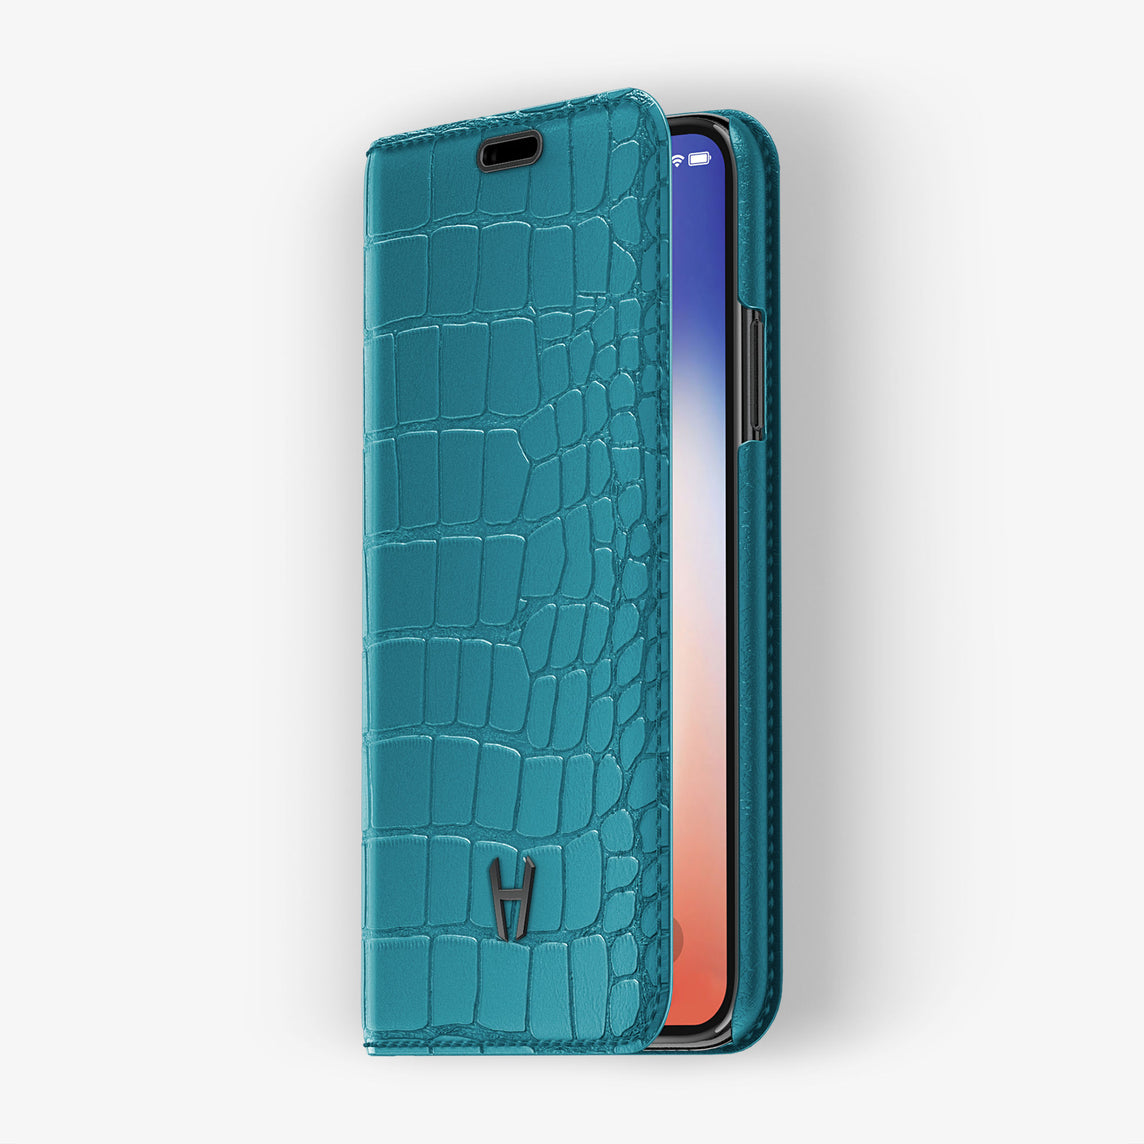 Alligator Folio Case iPhone 11 Pro | Blue Teal - Black